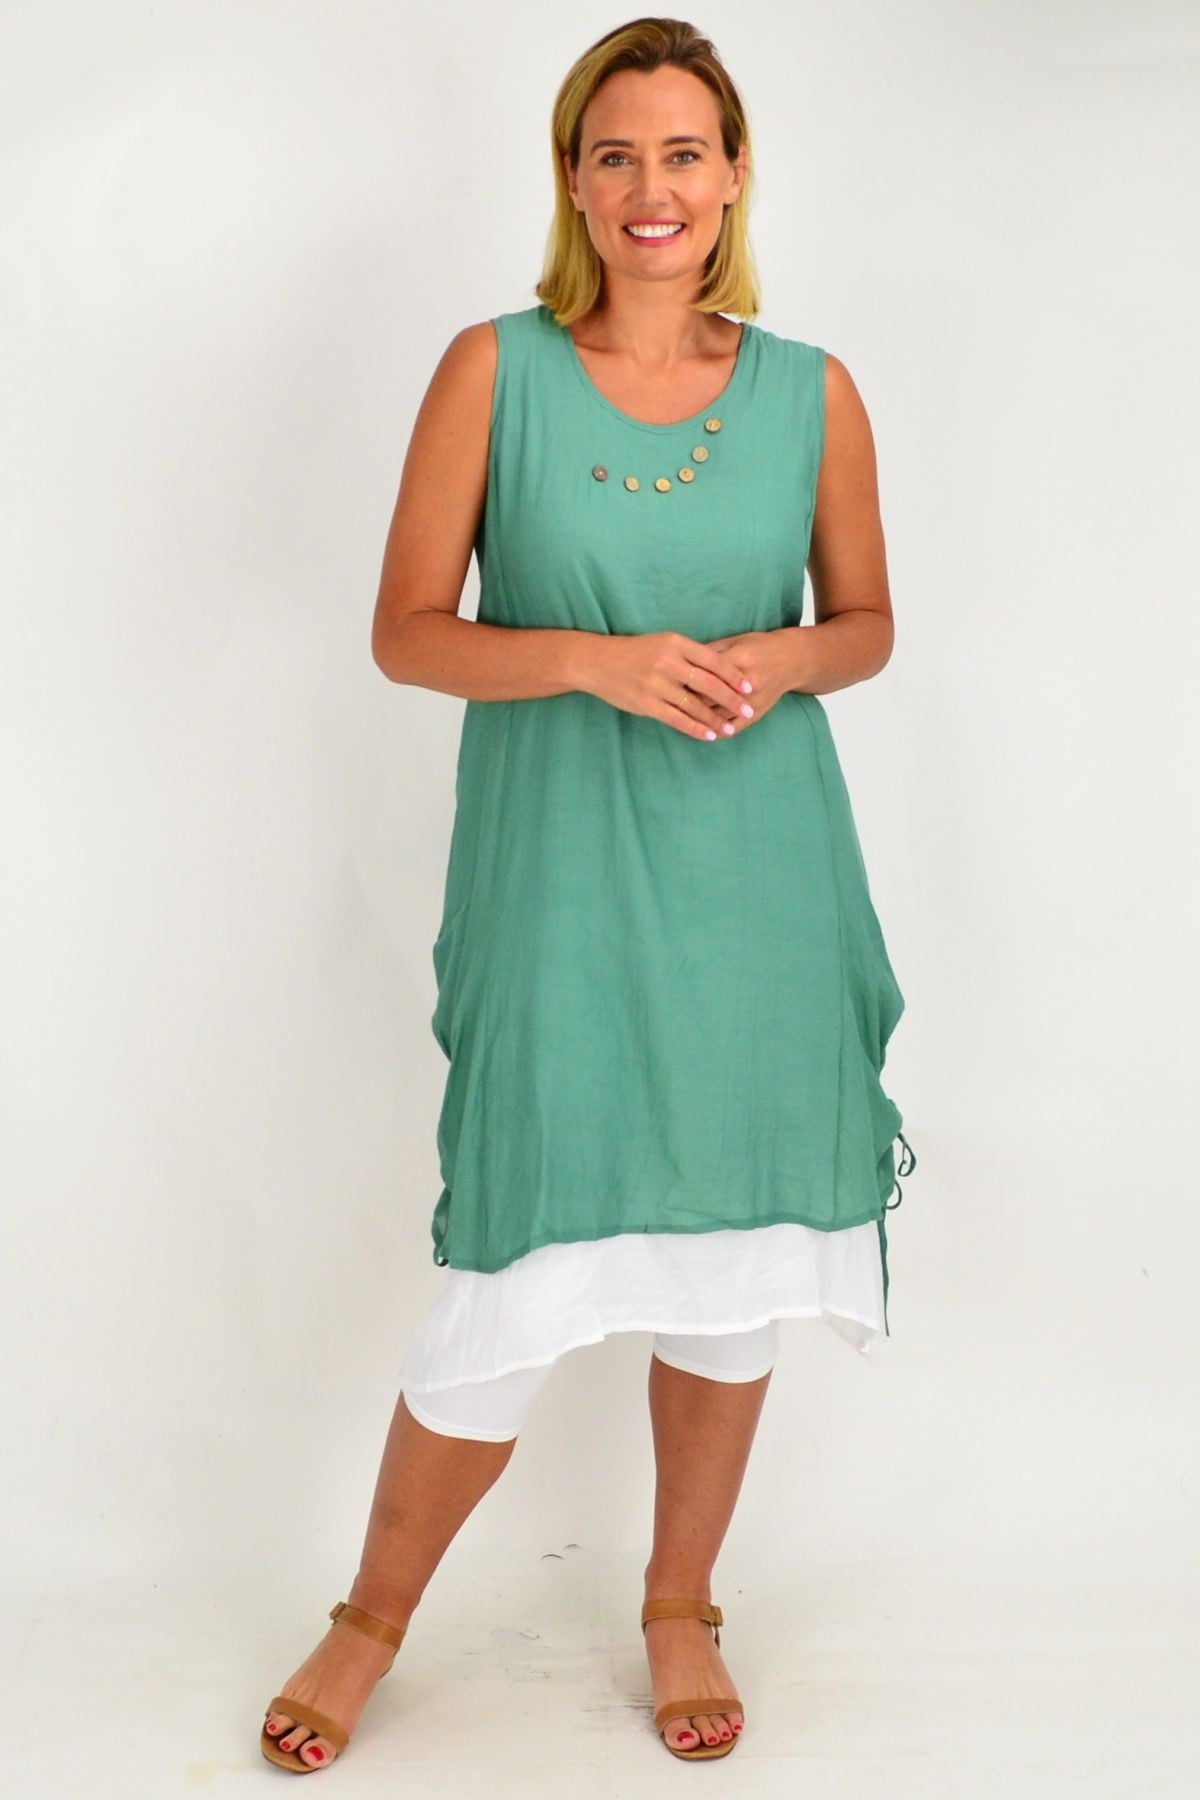 Green Overlay Tunic Dress | I Love Tunics | Tunic Tops | Tunic | Tunic Dresses  | womens clothing online